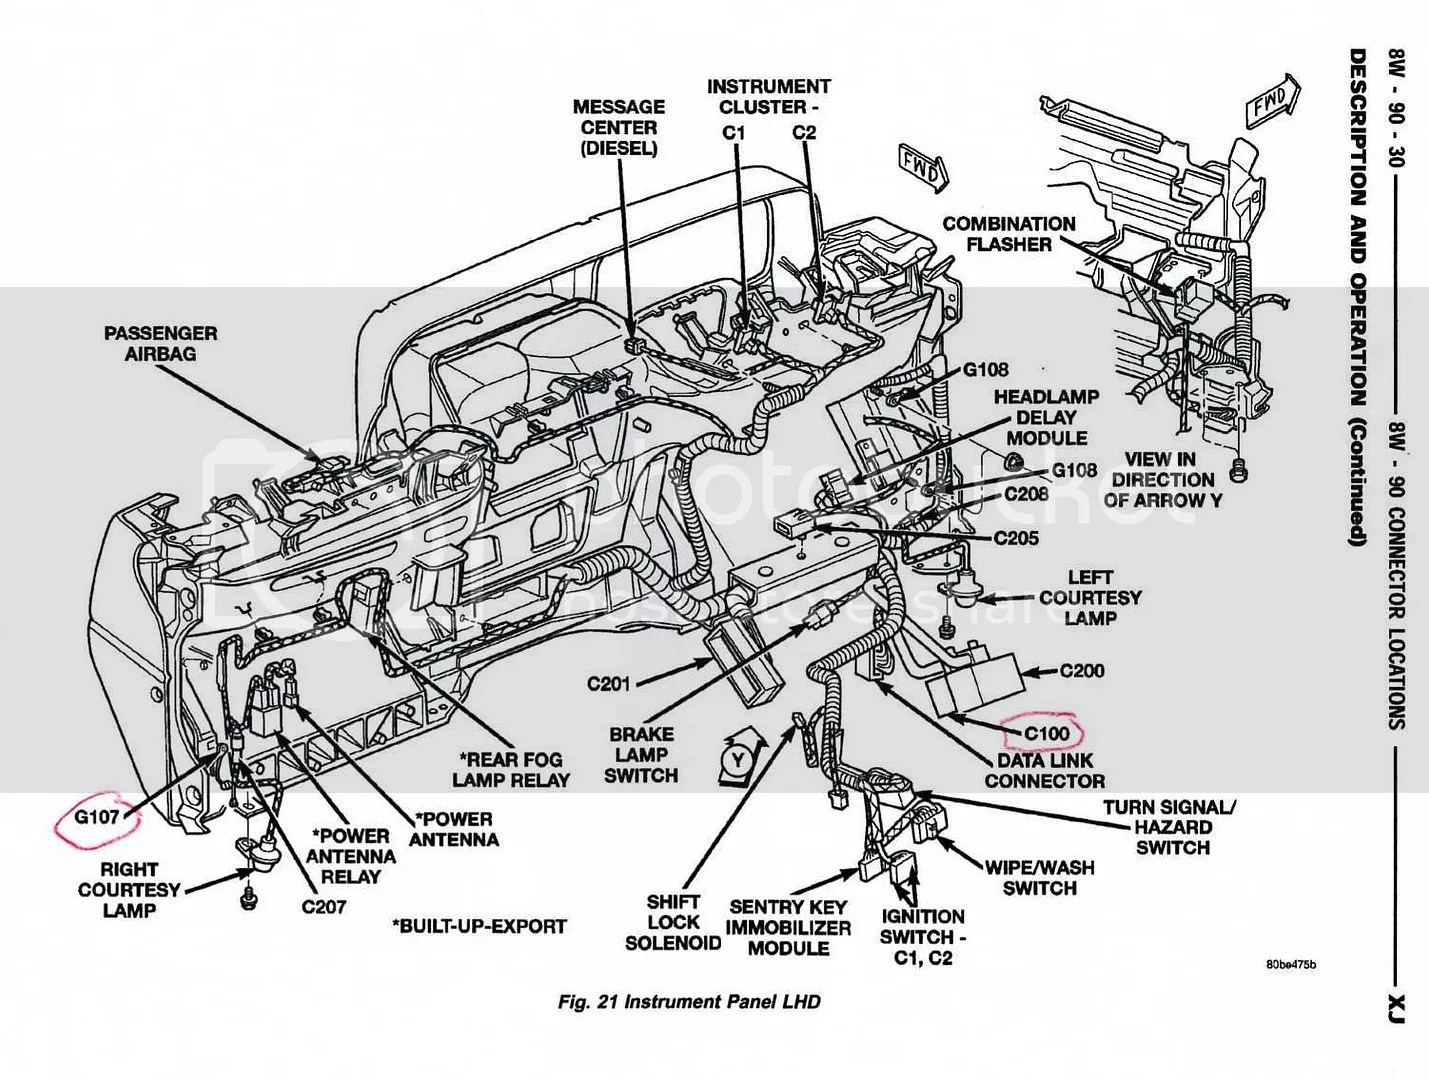 hight resolution of 2006 jeep grand cherokee engine diagram wiring diagram centre 2006 jeep grand cherokee engine diagram 2006 jeep cherokee engine diagram